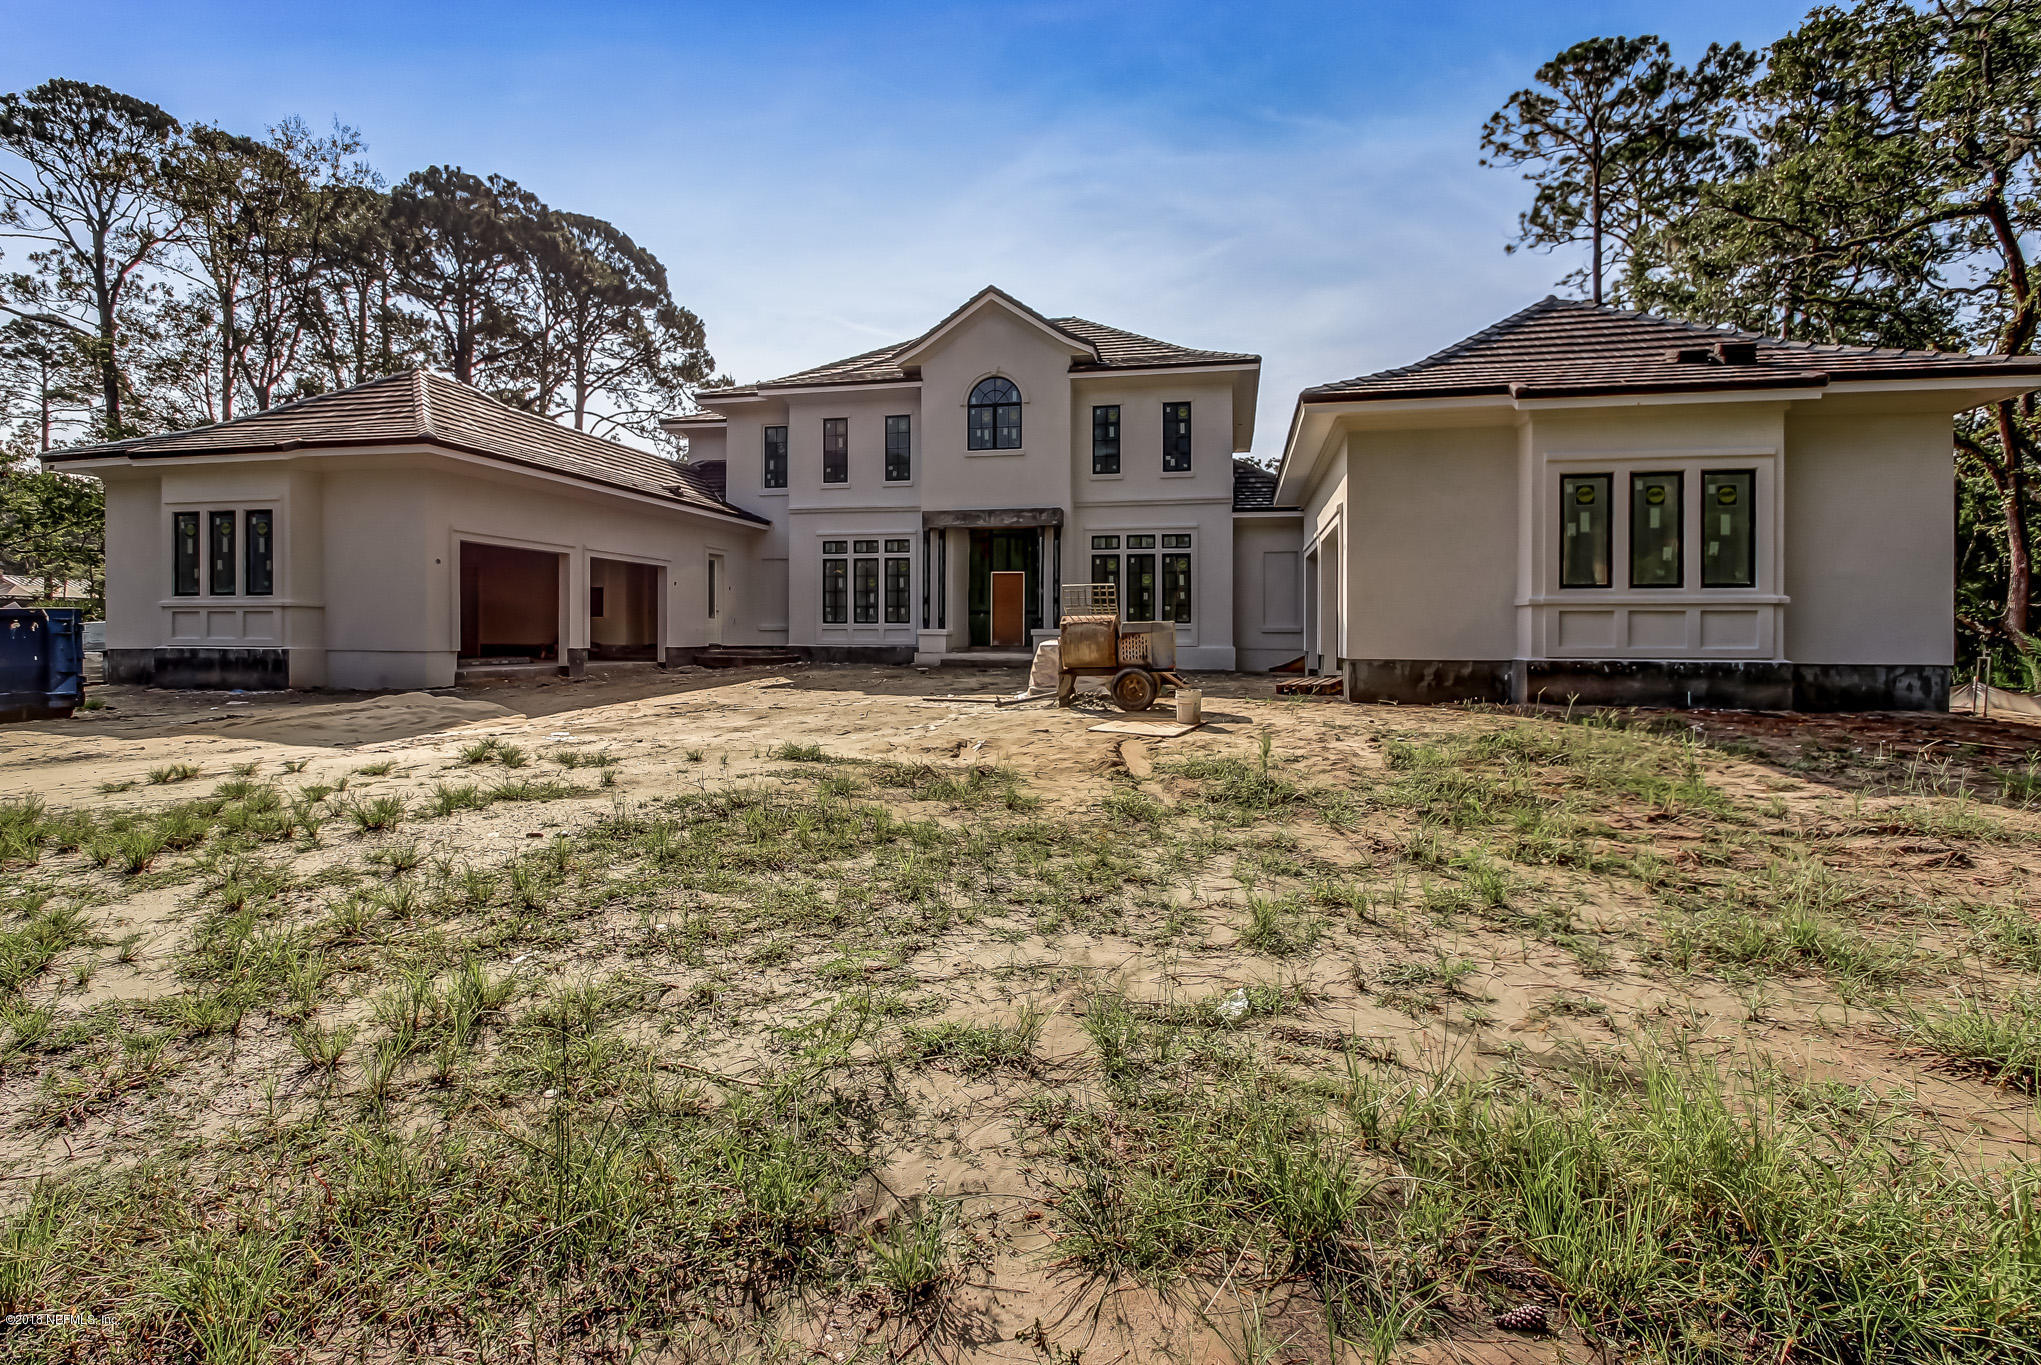 325 PANTHER CHASE, PONTE VEDRA BEACH, FLORIDA 32082, 5 Bedrooms Bedrooms, ,5 BathroomsBathrooms,Residential - single family,For sale,PANTHER CHASE,873750